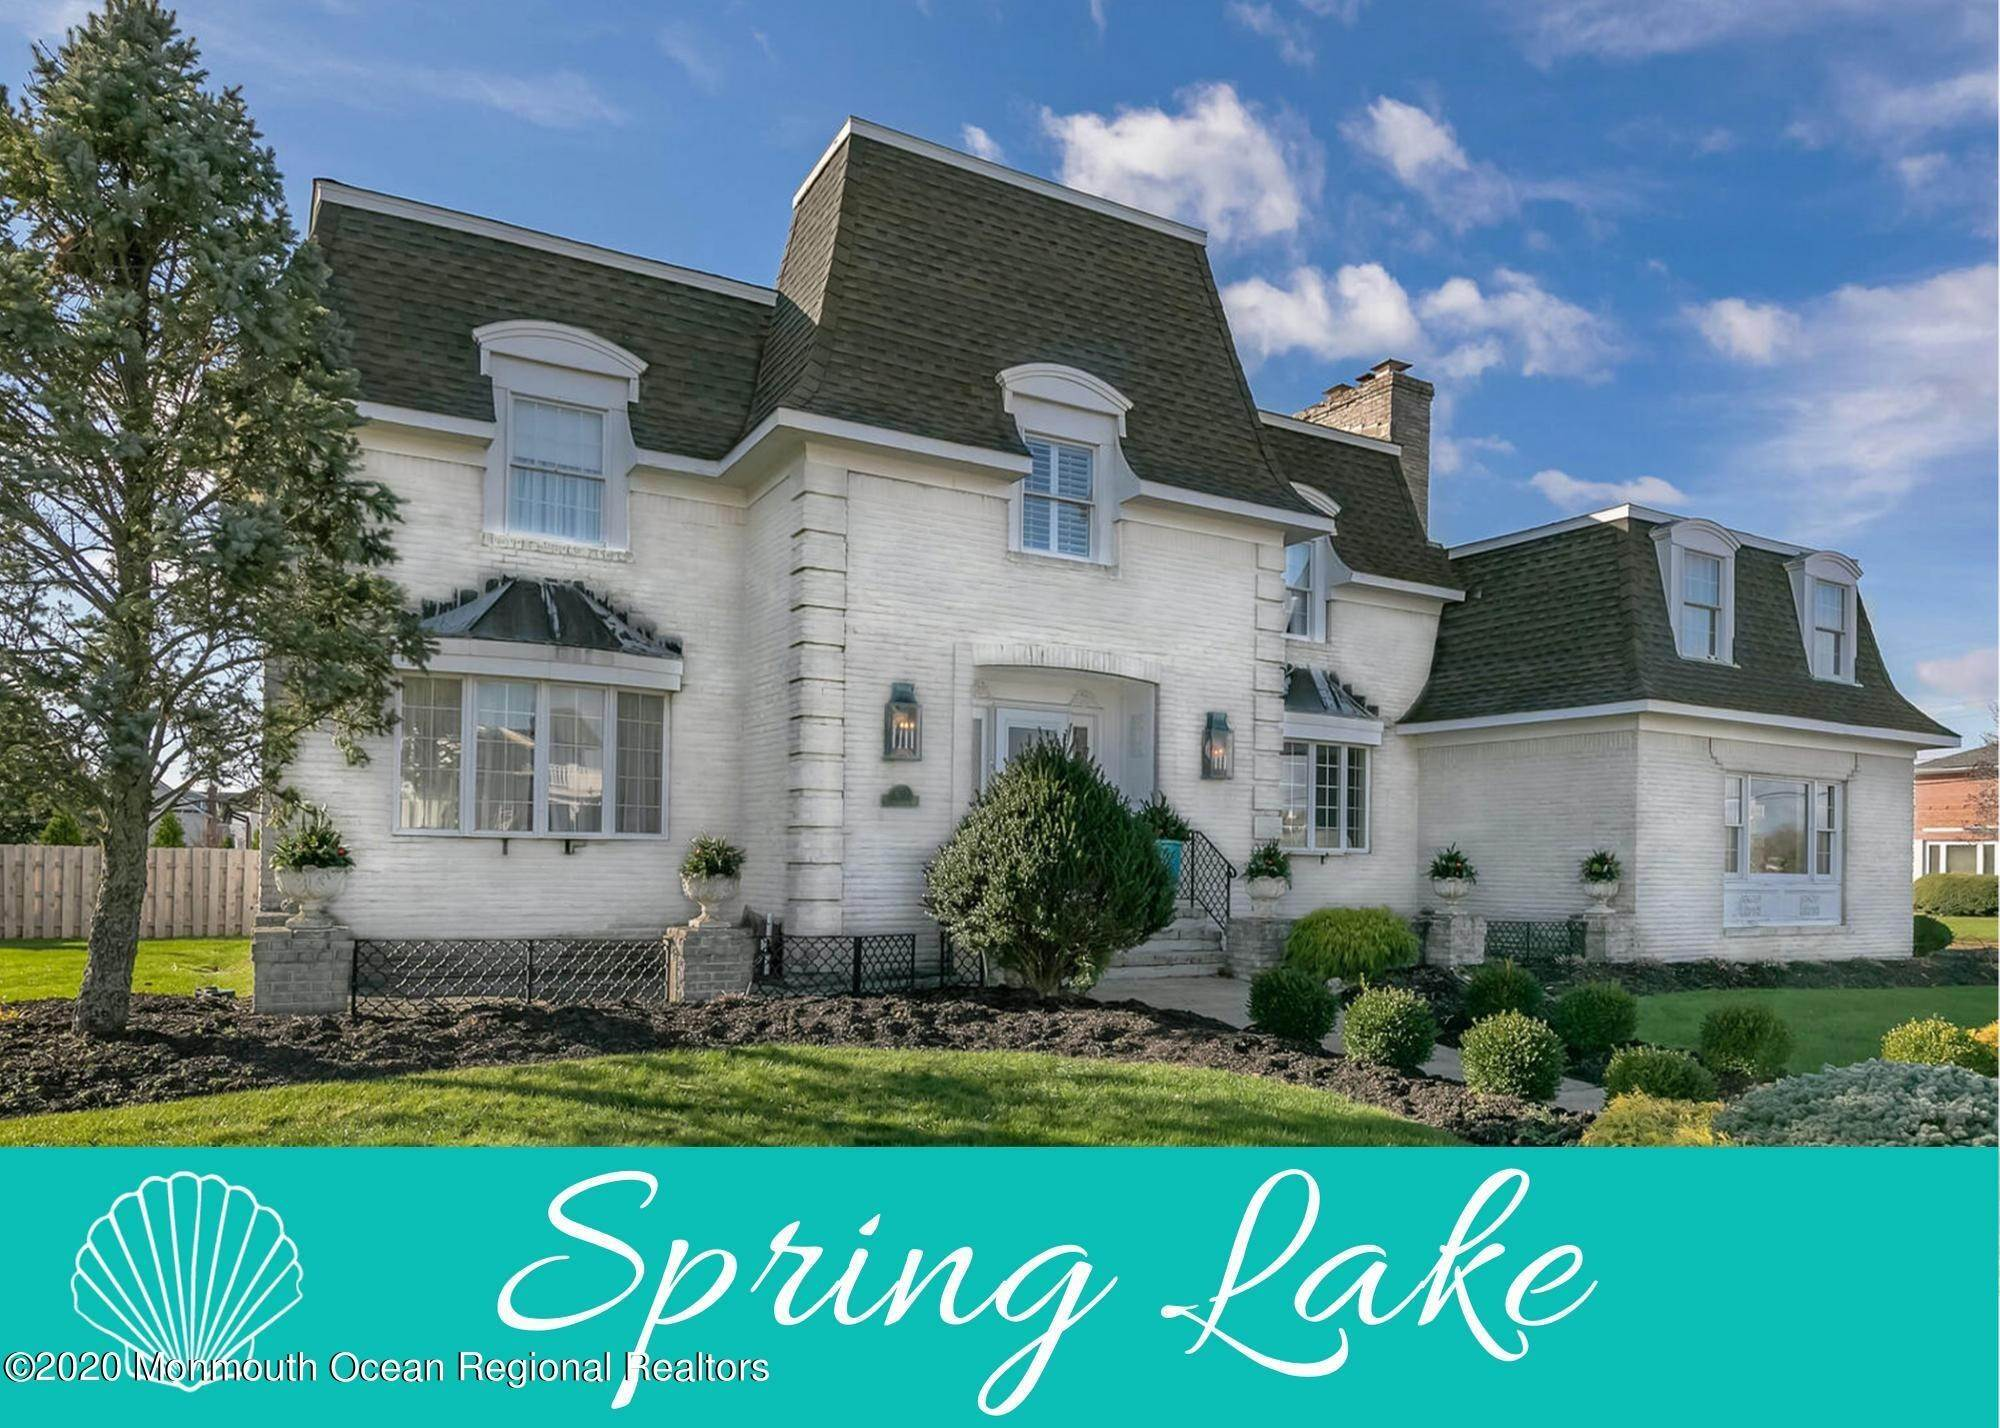 Single Family Home for Sale at 1 Monmouth Shire Lane Spring Lake, New Jersey, 07762 United States